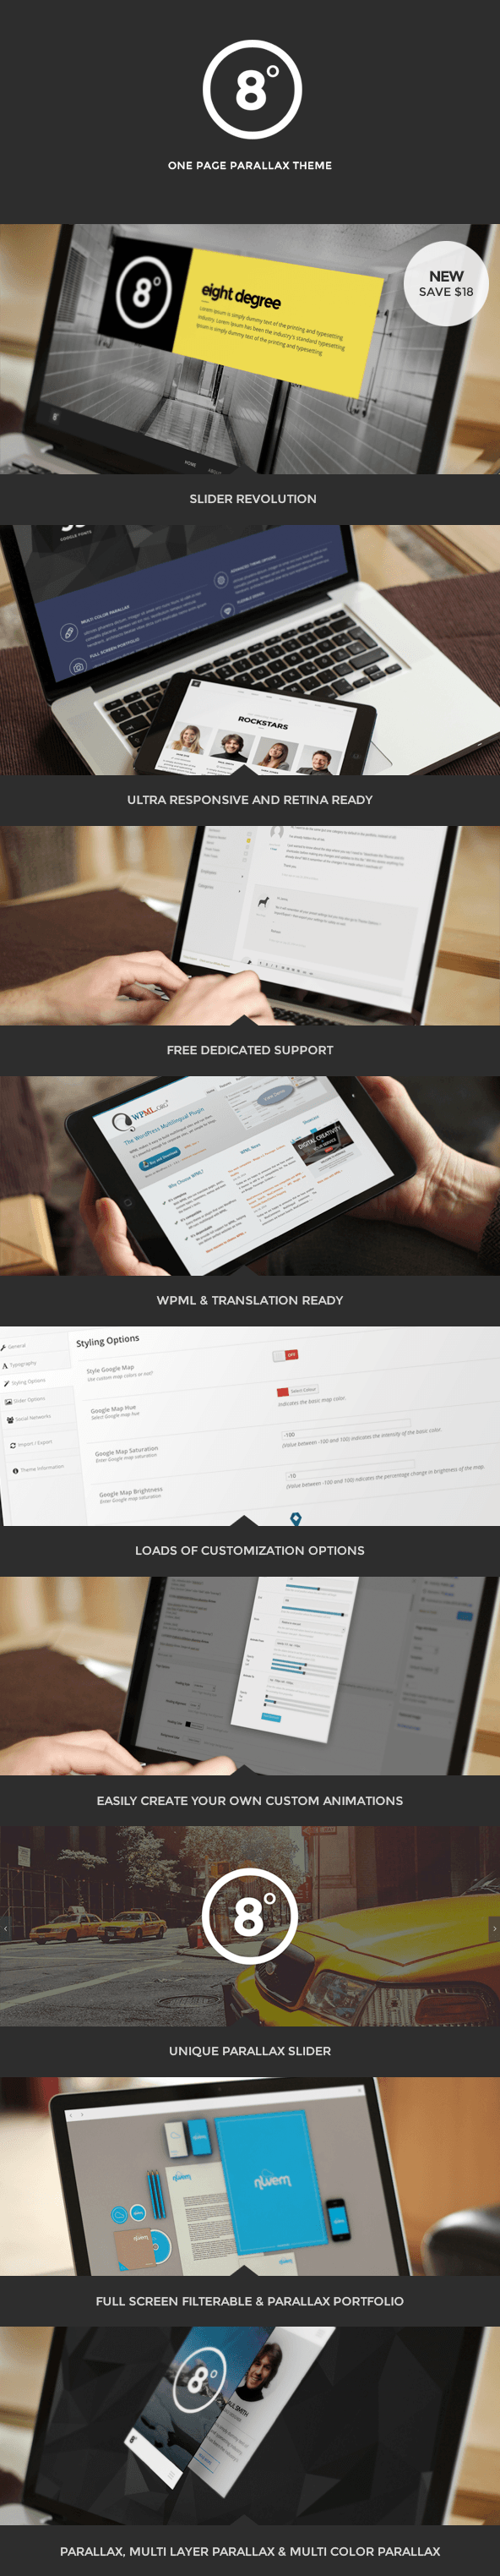 WordPress theme Eight Degree - One Page Parallax Theme (Portfolio)